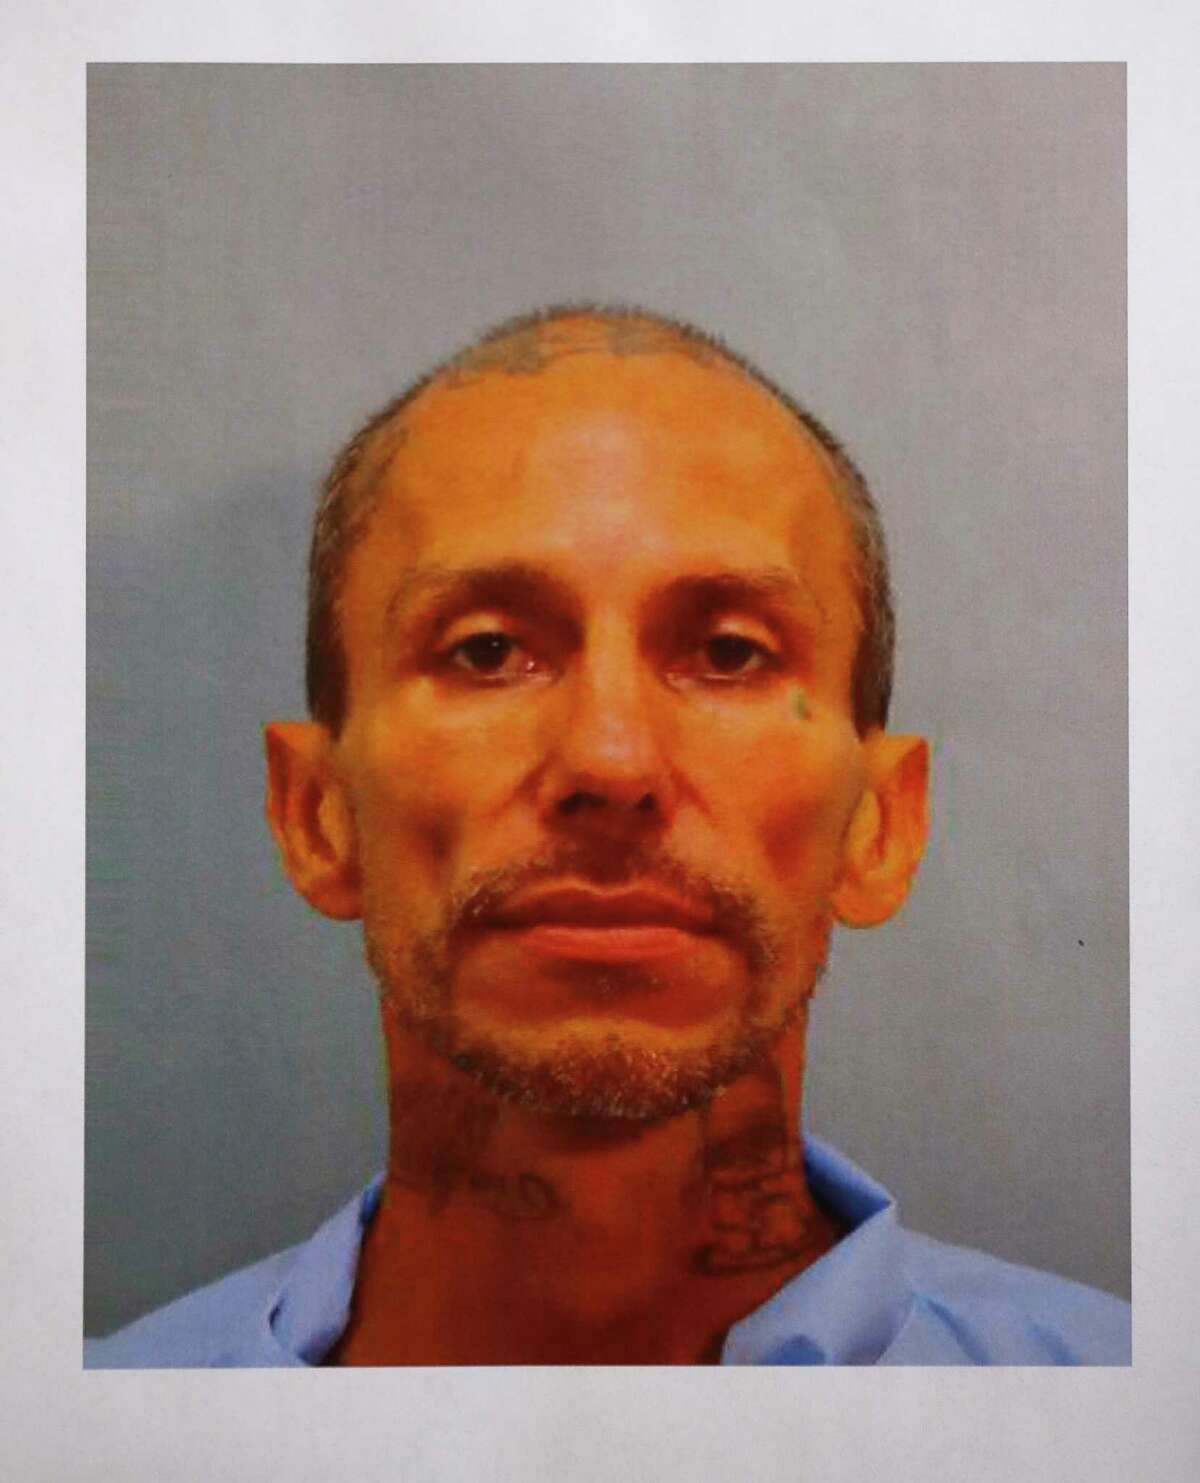 HOUSTON SERIAL KILLER: The city of Houston was on edge after suspected serial killer, Jose Gilberto Rodriguez allegedly killed three people and wounded a Metro bus driver that started July 9 and spanned only eight days. DETAILS: https://bit.ly/2mpWGA4